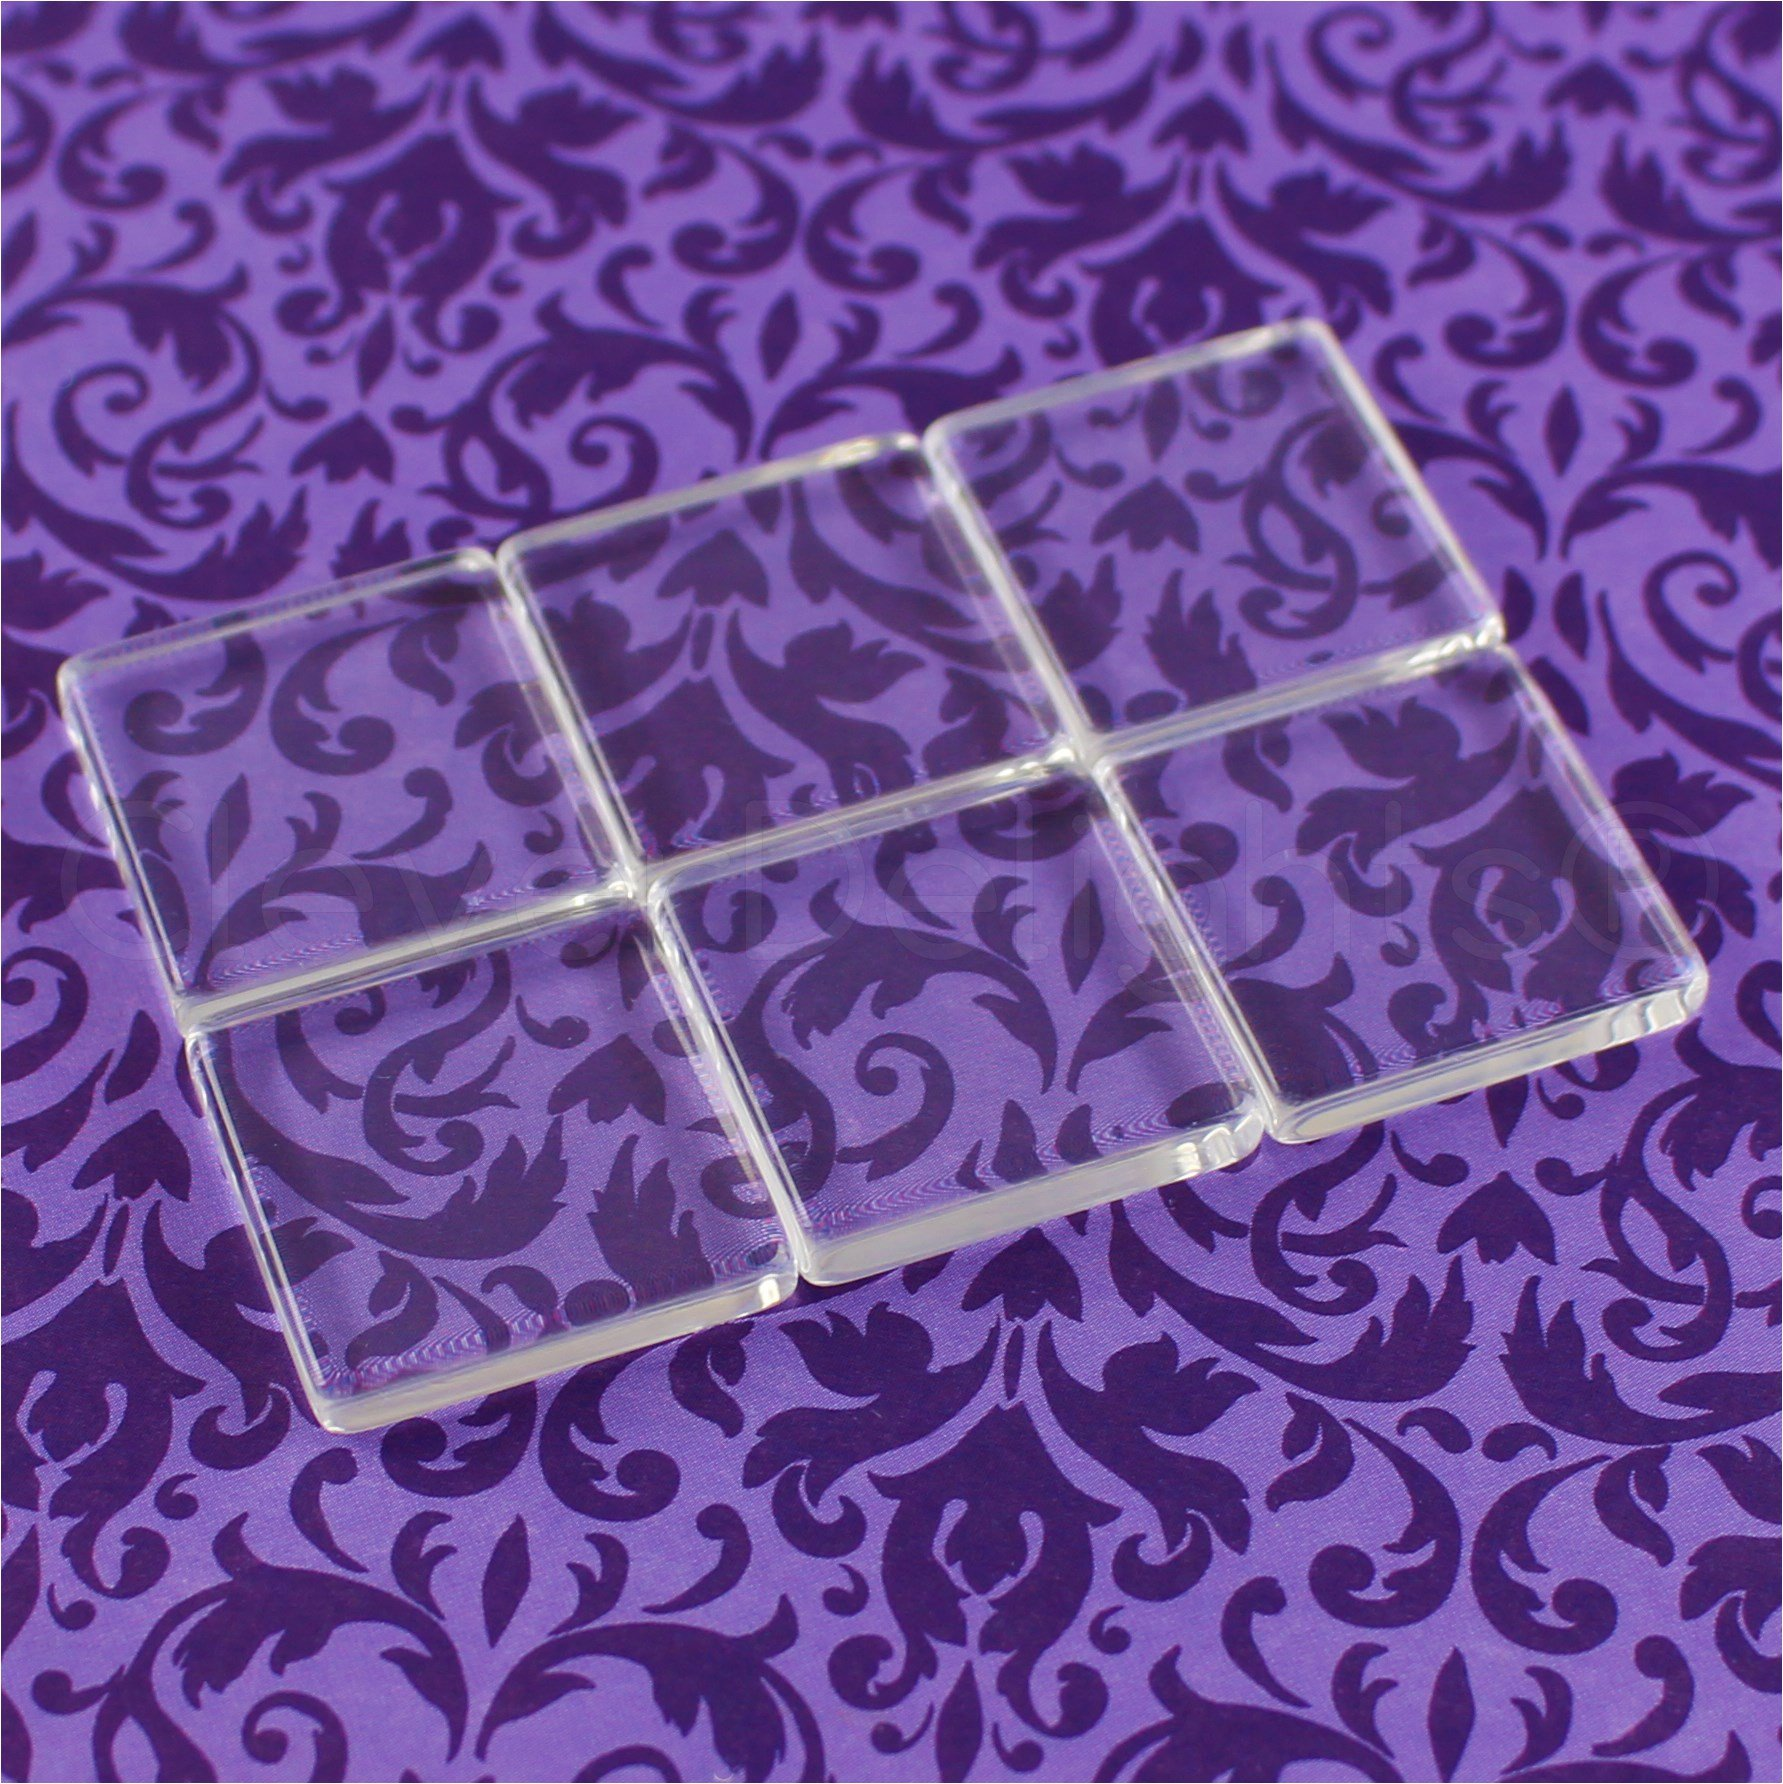 50 CleverDelights Square Glass Tiles - 1 Inch - Clear Tiles - Glass Cabochons - for Photo Pendants Mosaics Trays - 1'' 25mm Tiles - 4mm Thick by CleverDelights